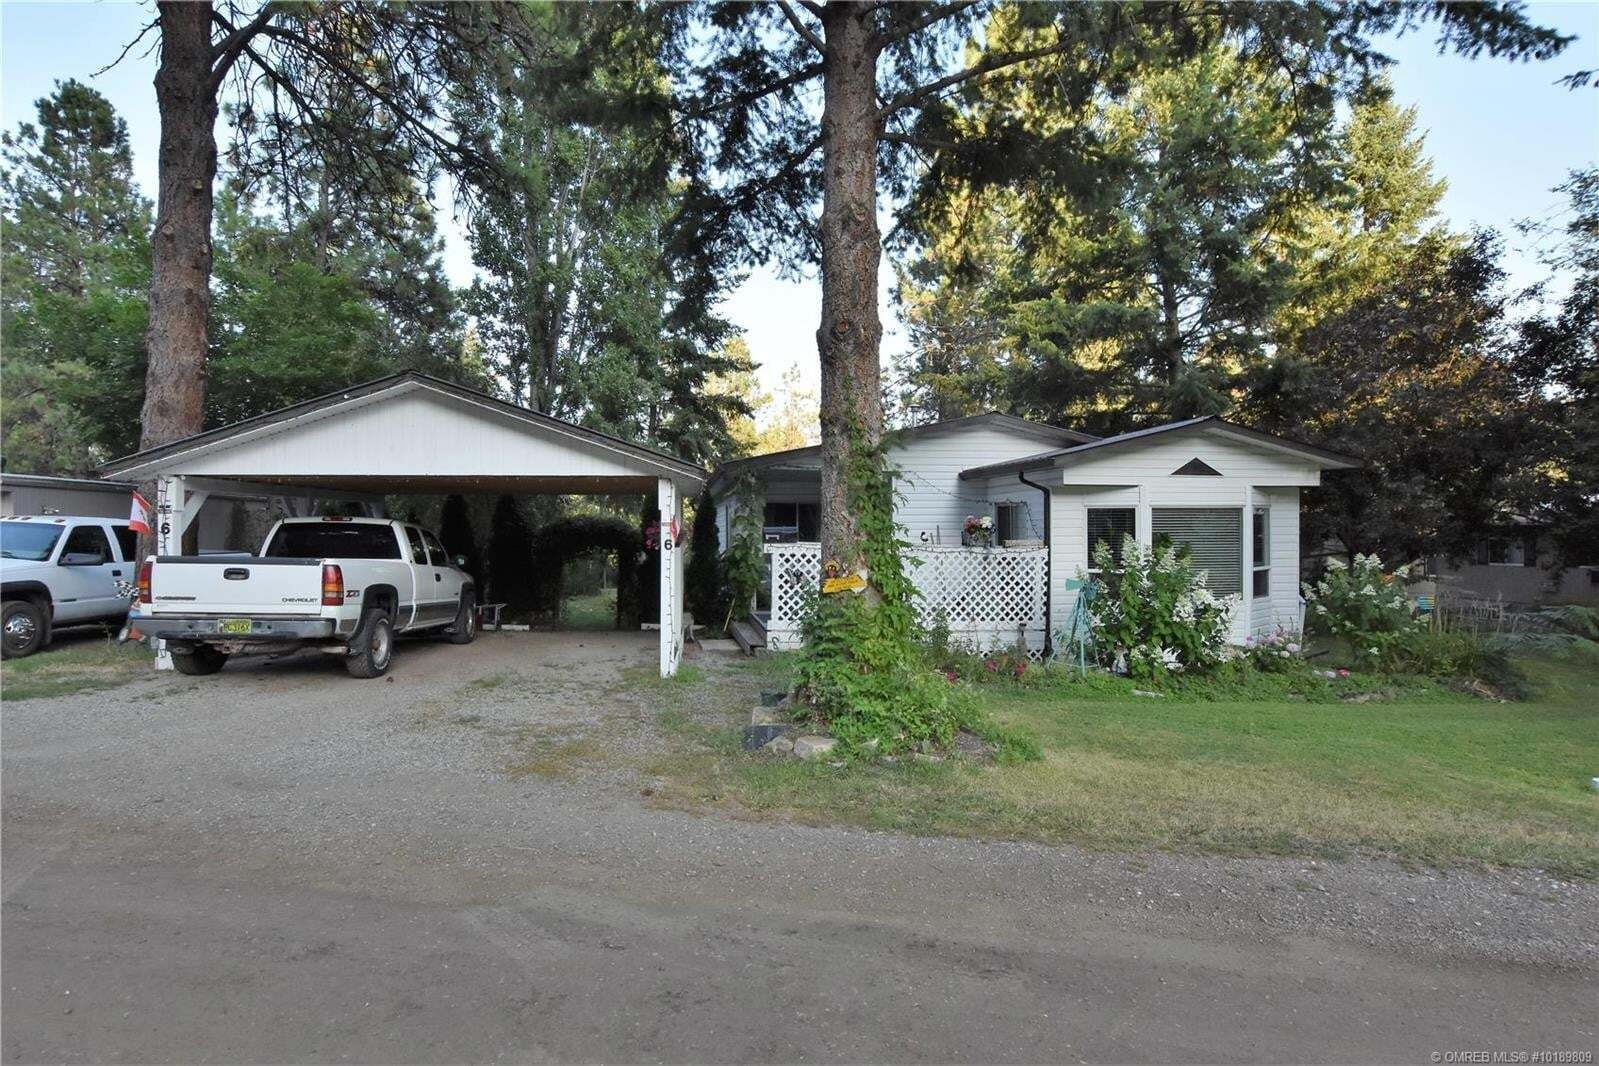 Home for sale at 12069 Westside Rd Vernon British Columbia - MLS: 10189809